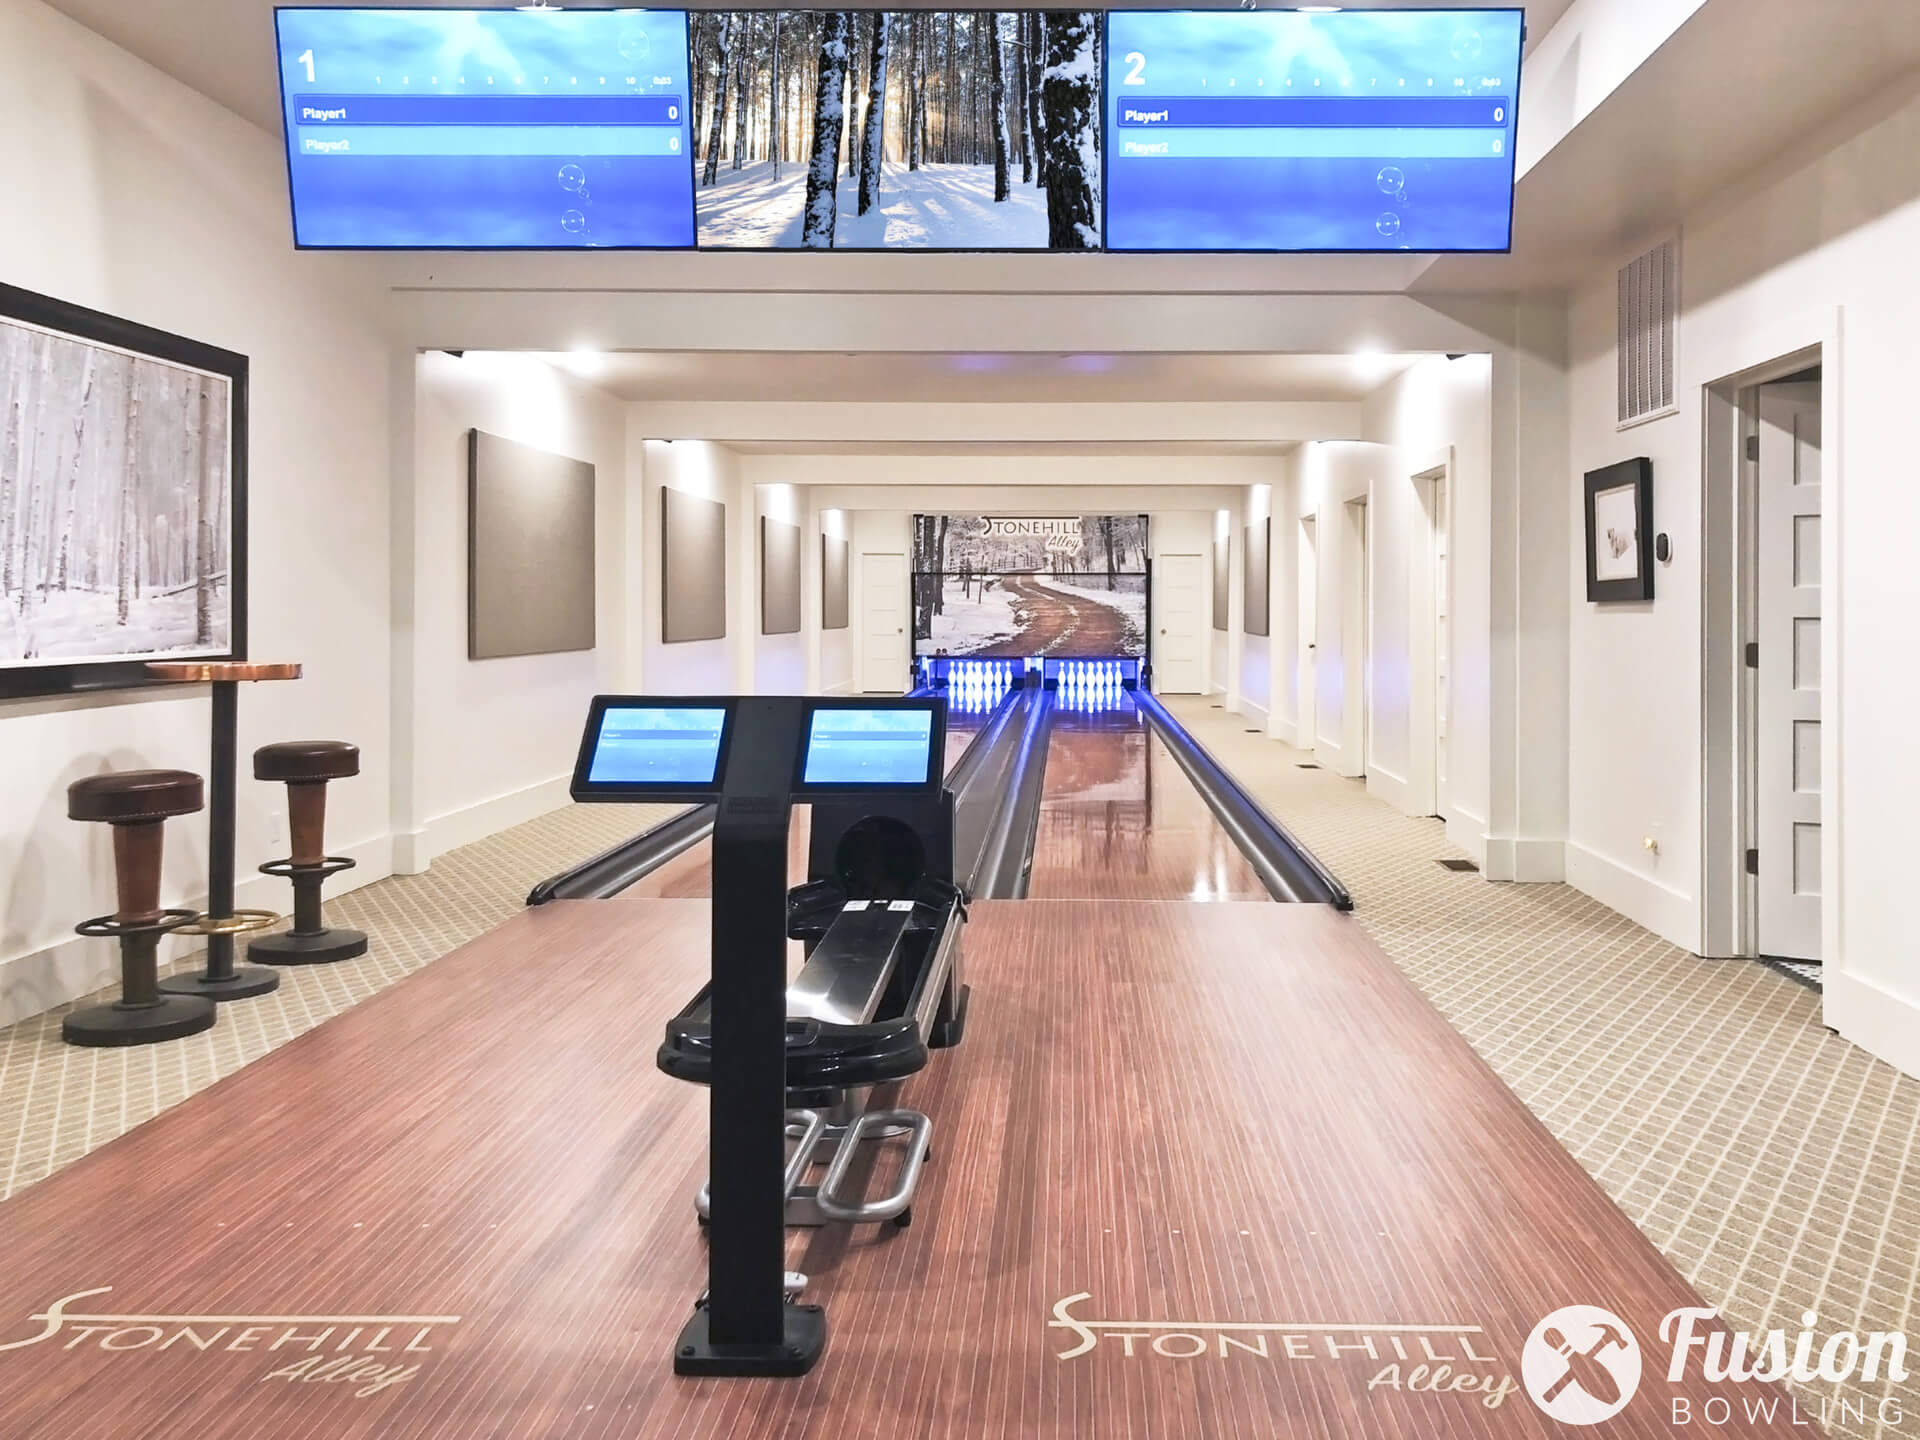 Design of a home bowling alley.